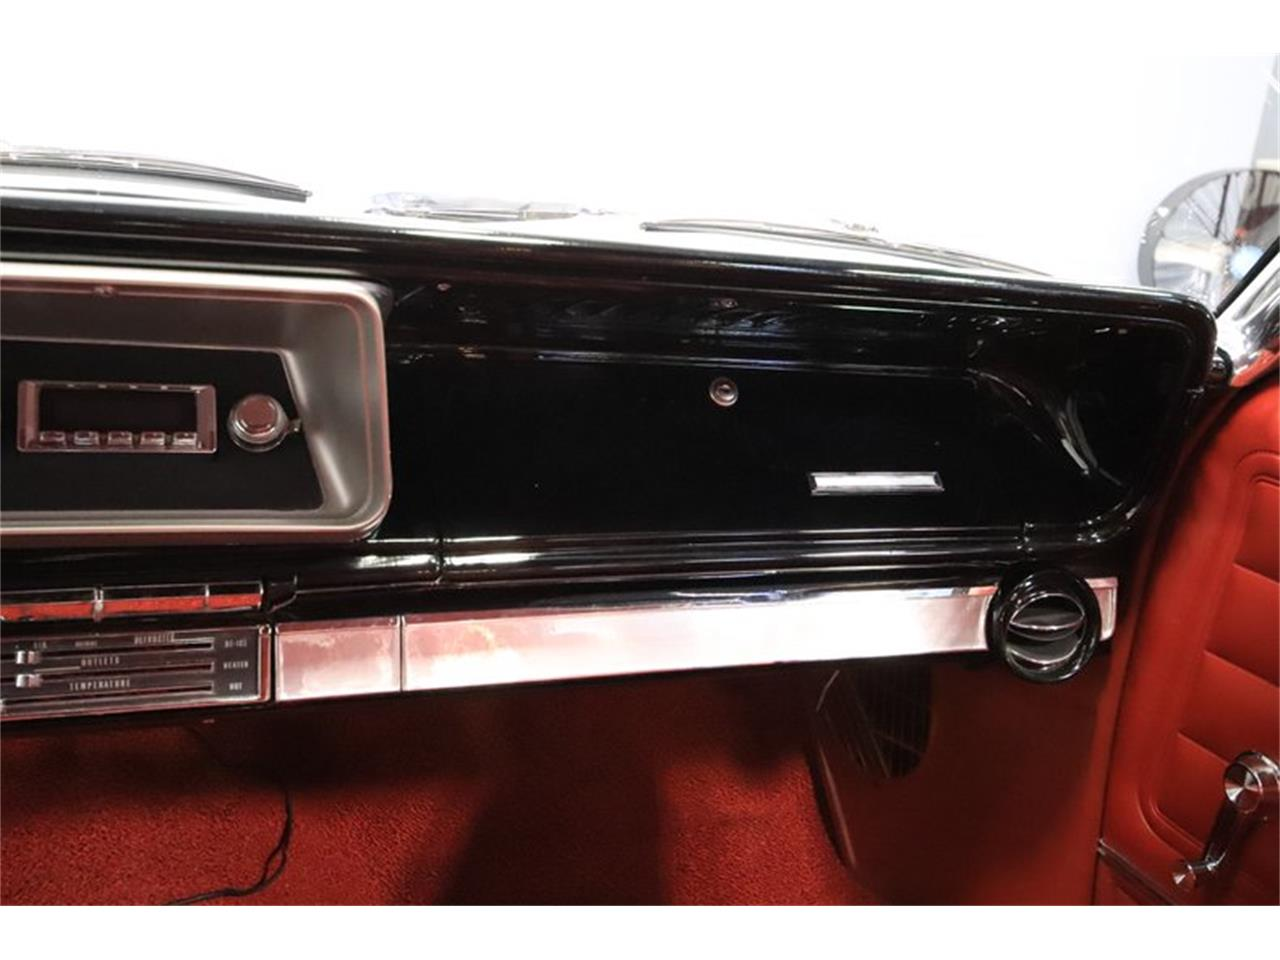 Large Picture of 1966 Chevrolet Impala located in Arizona Offered by Streetside Classics - Phoenix - Q2EF